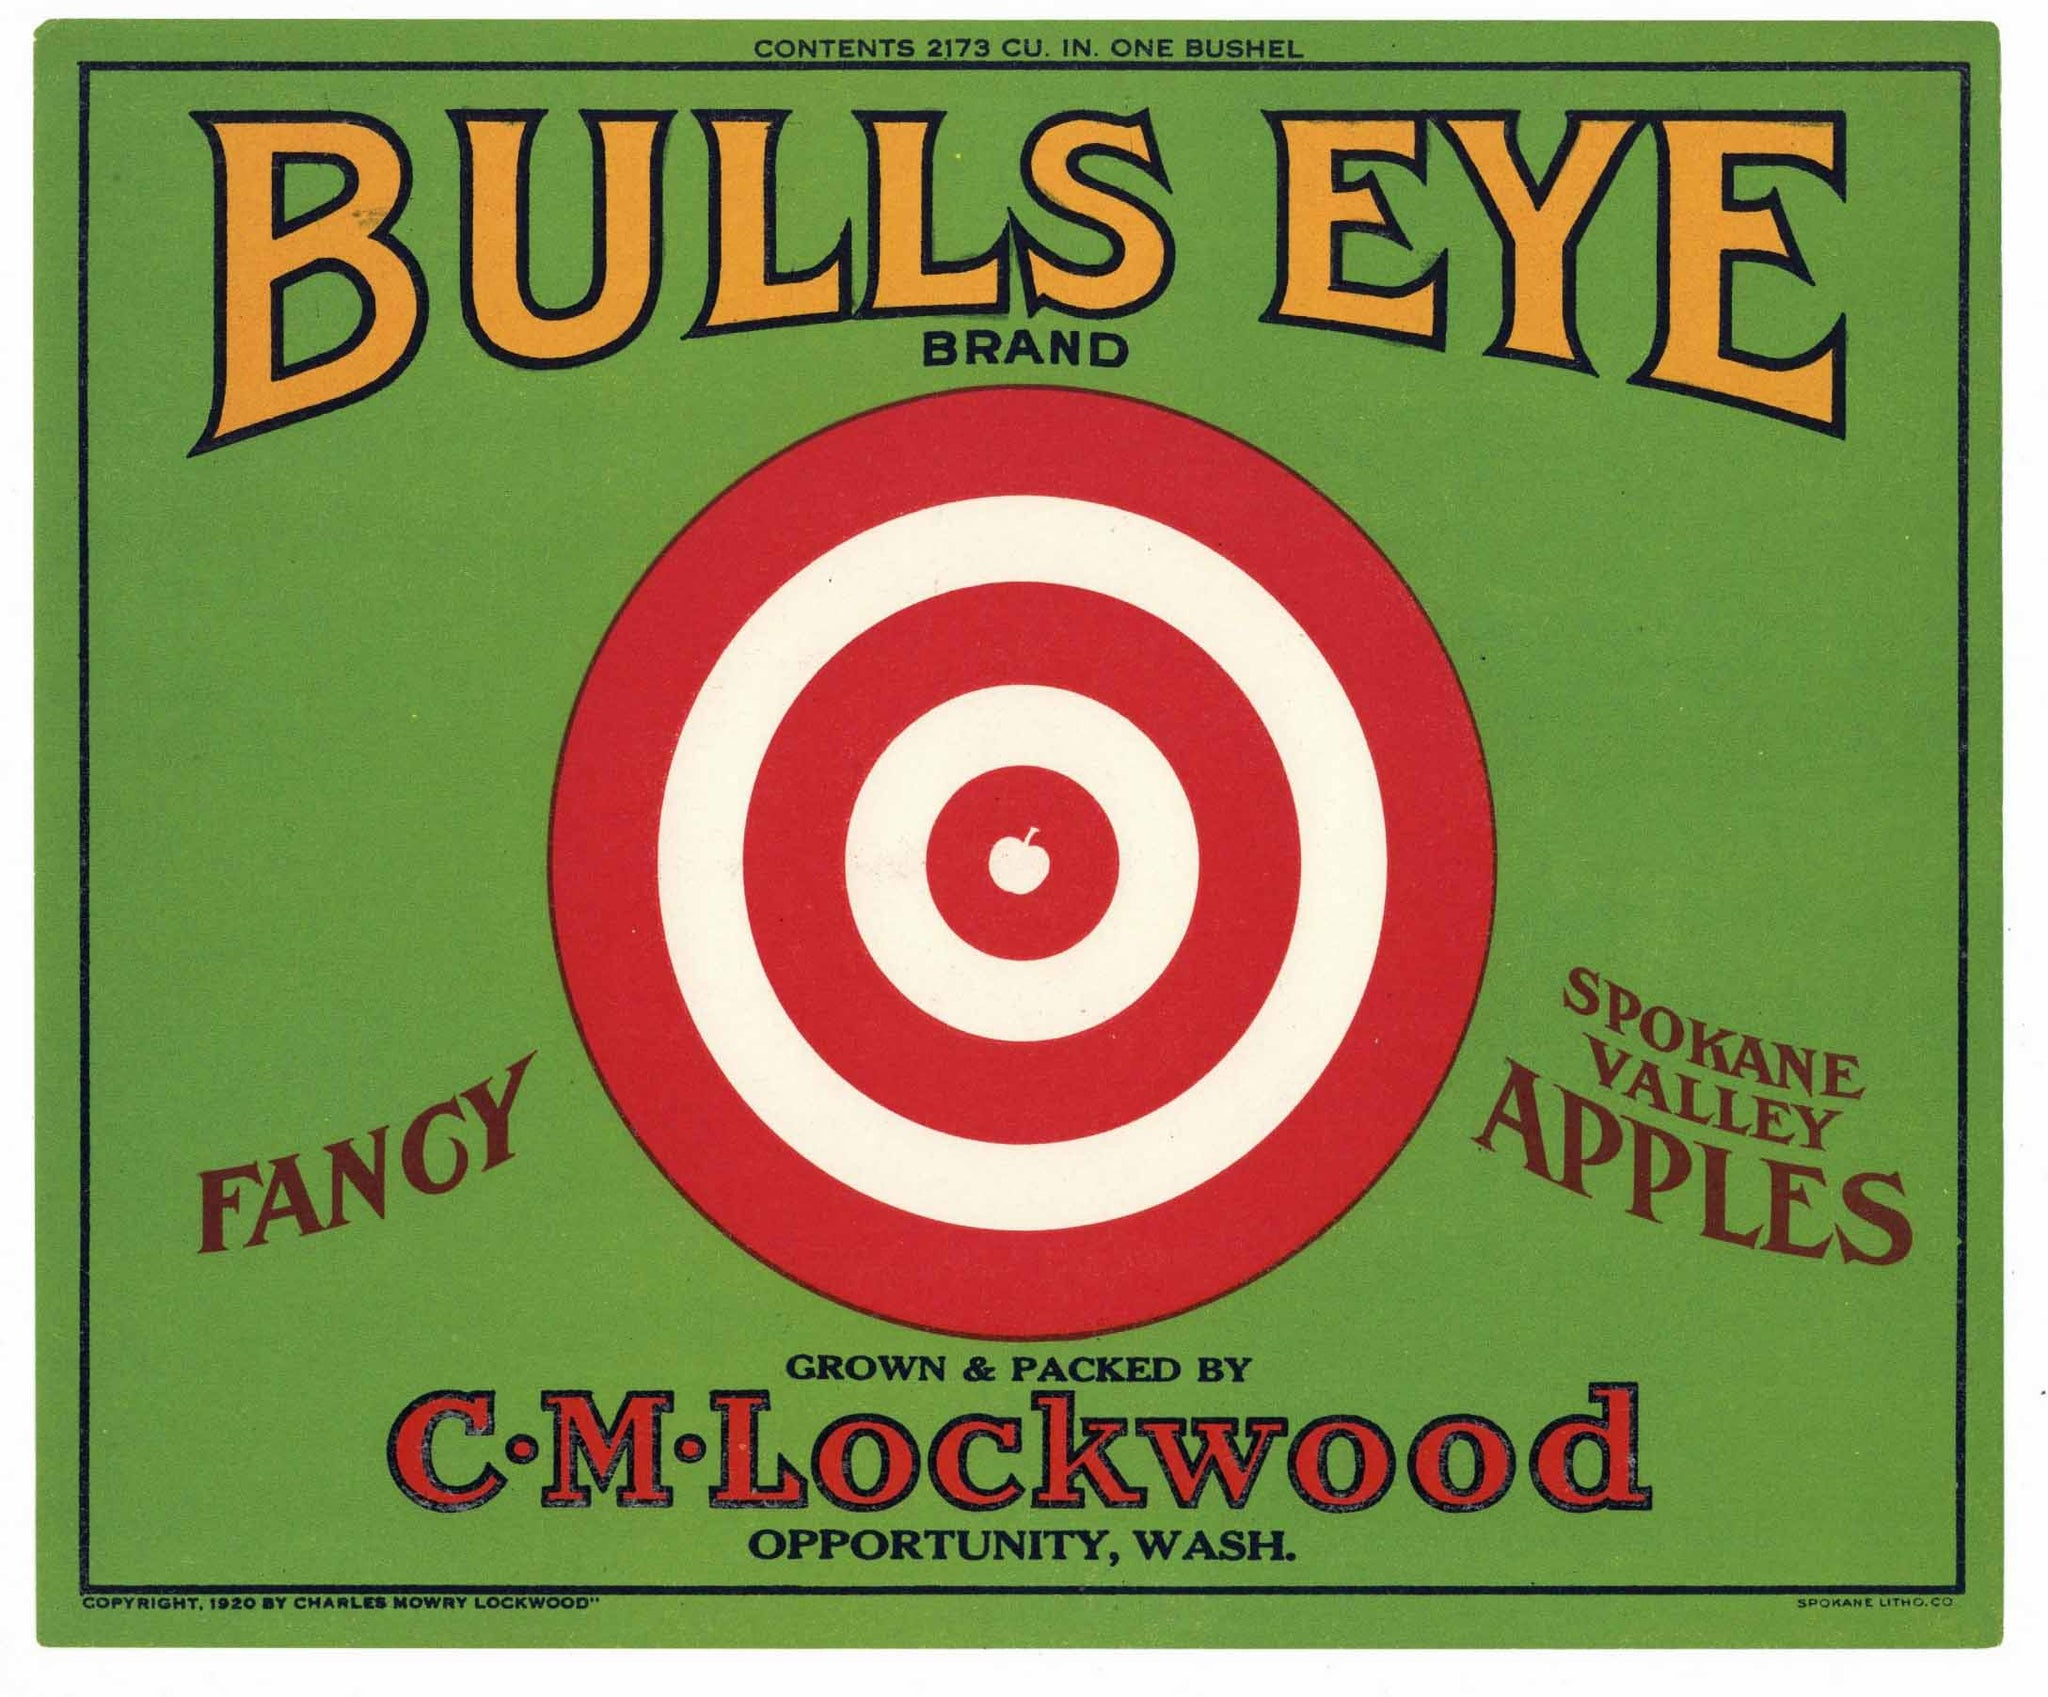 Bulls Eye Brand Vintage Washington Apple Crate Label, g